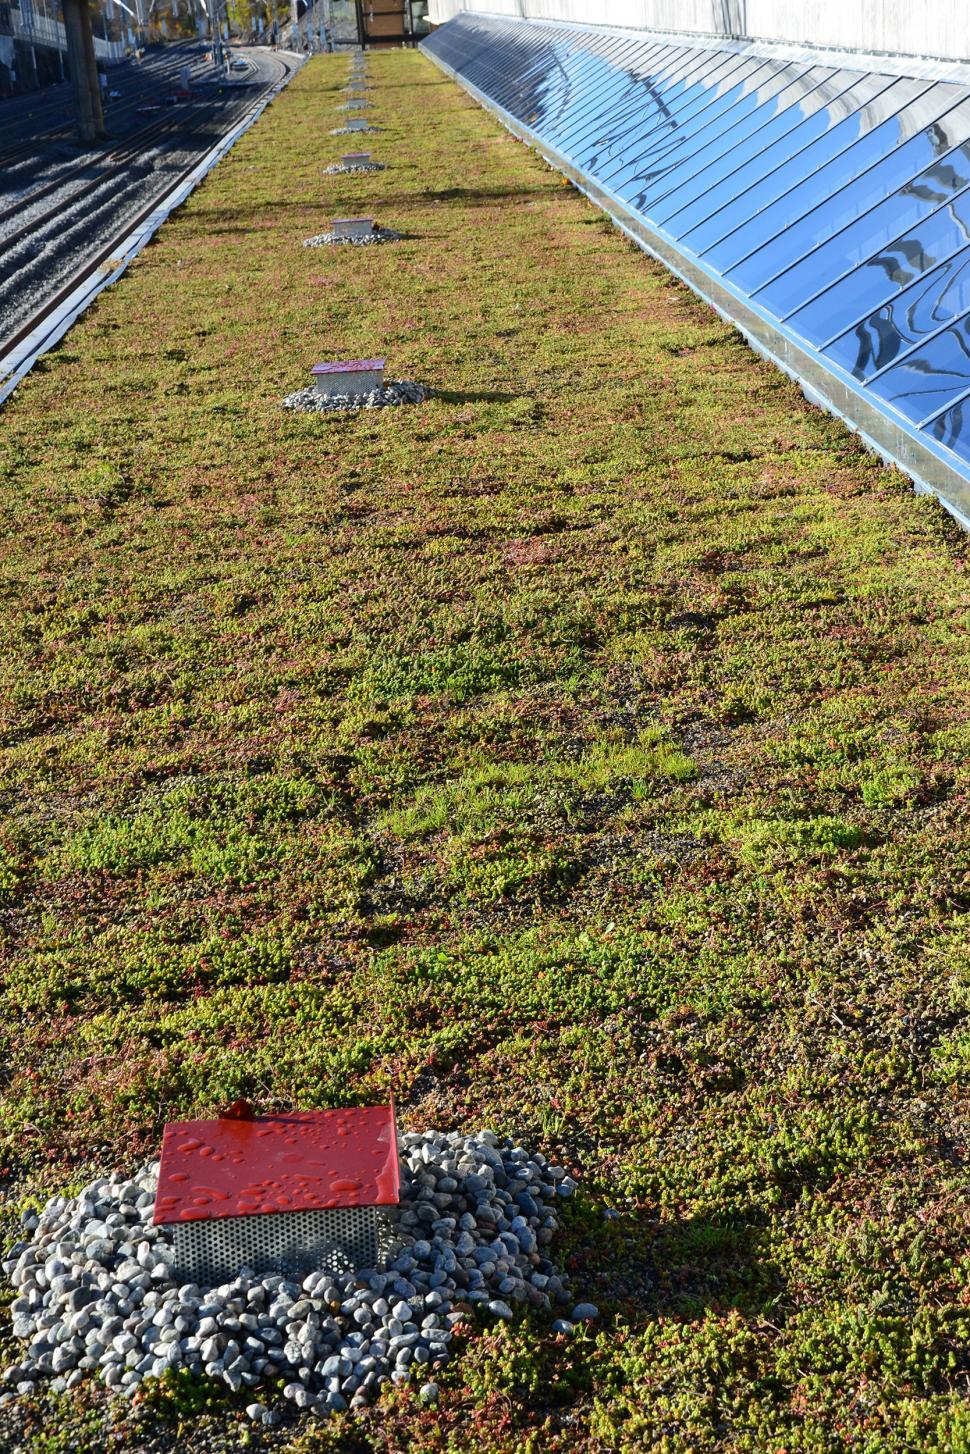 Download Free Stock HD Photo of Sedum green roof Online